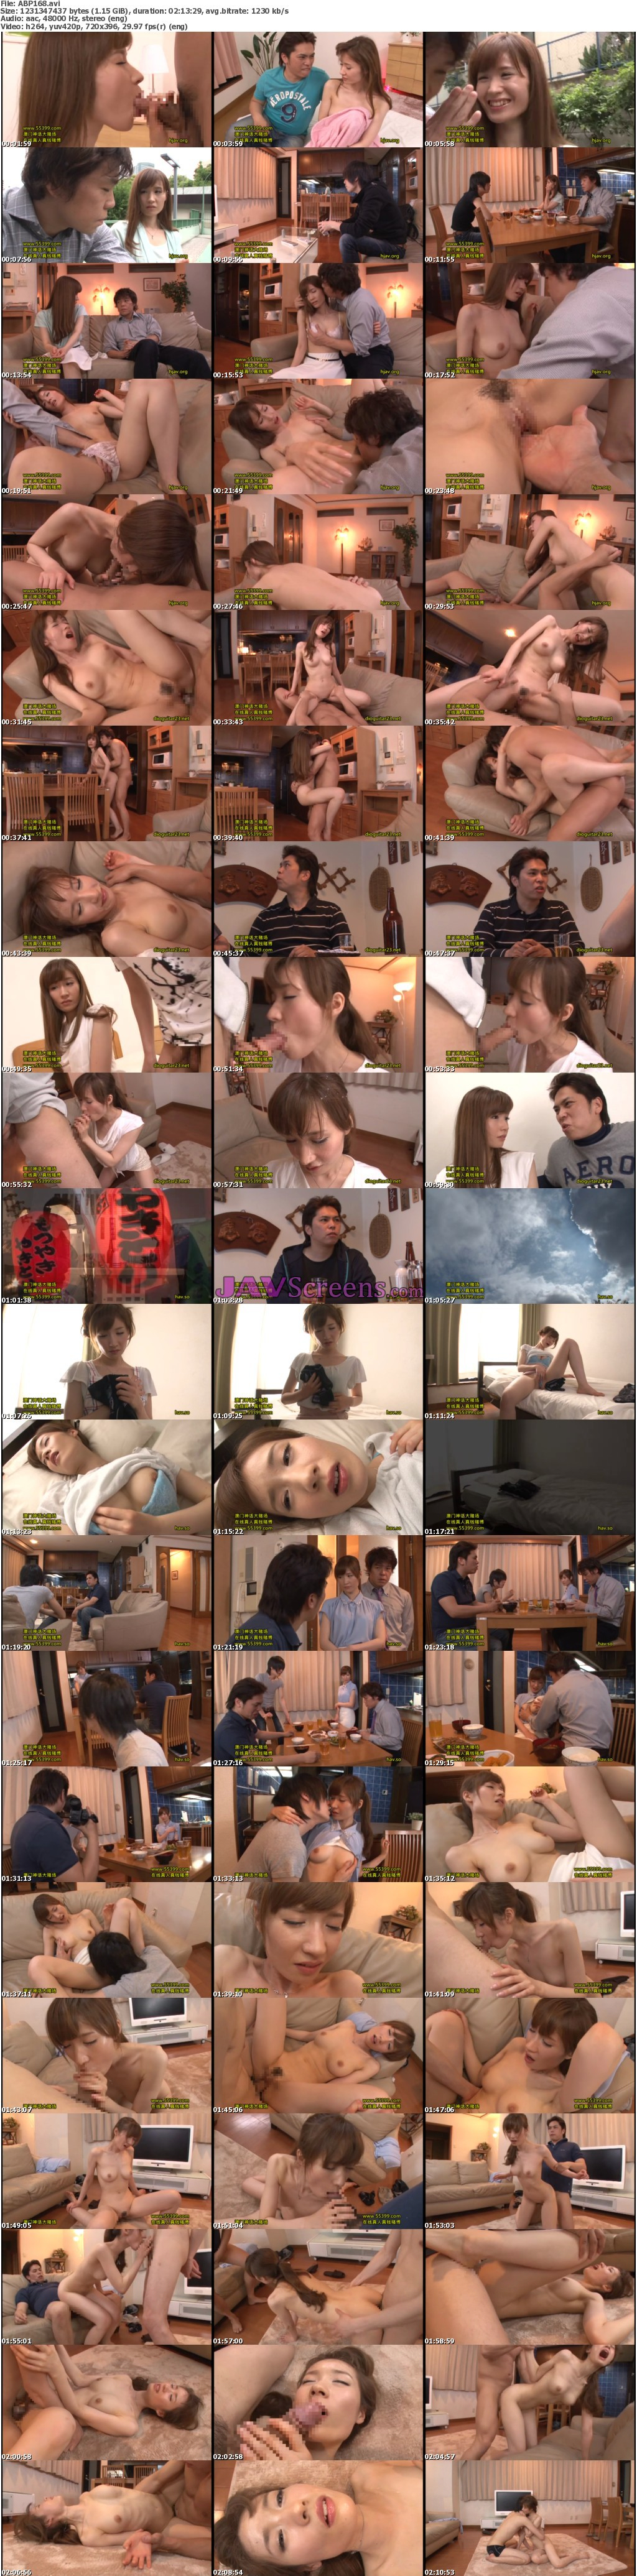 ABP-168.jpg - JAV Screenshot